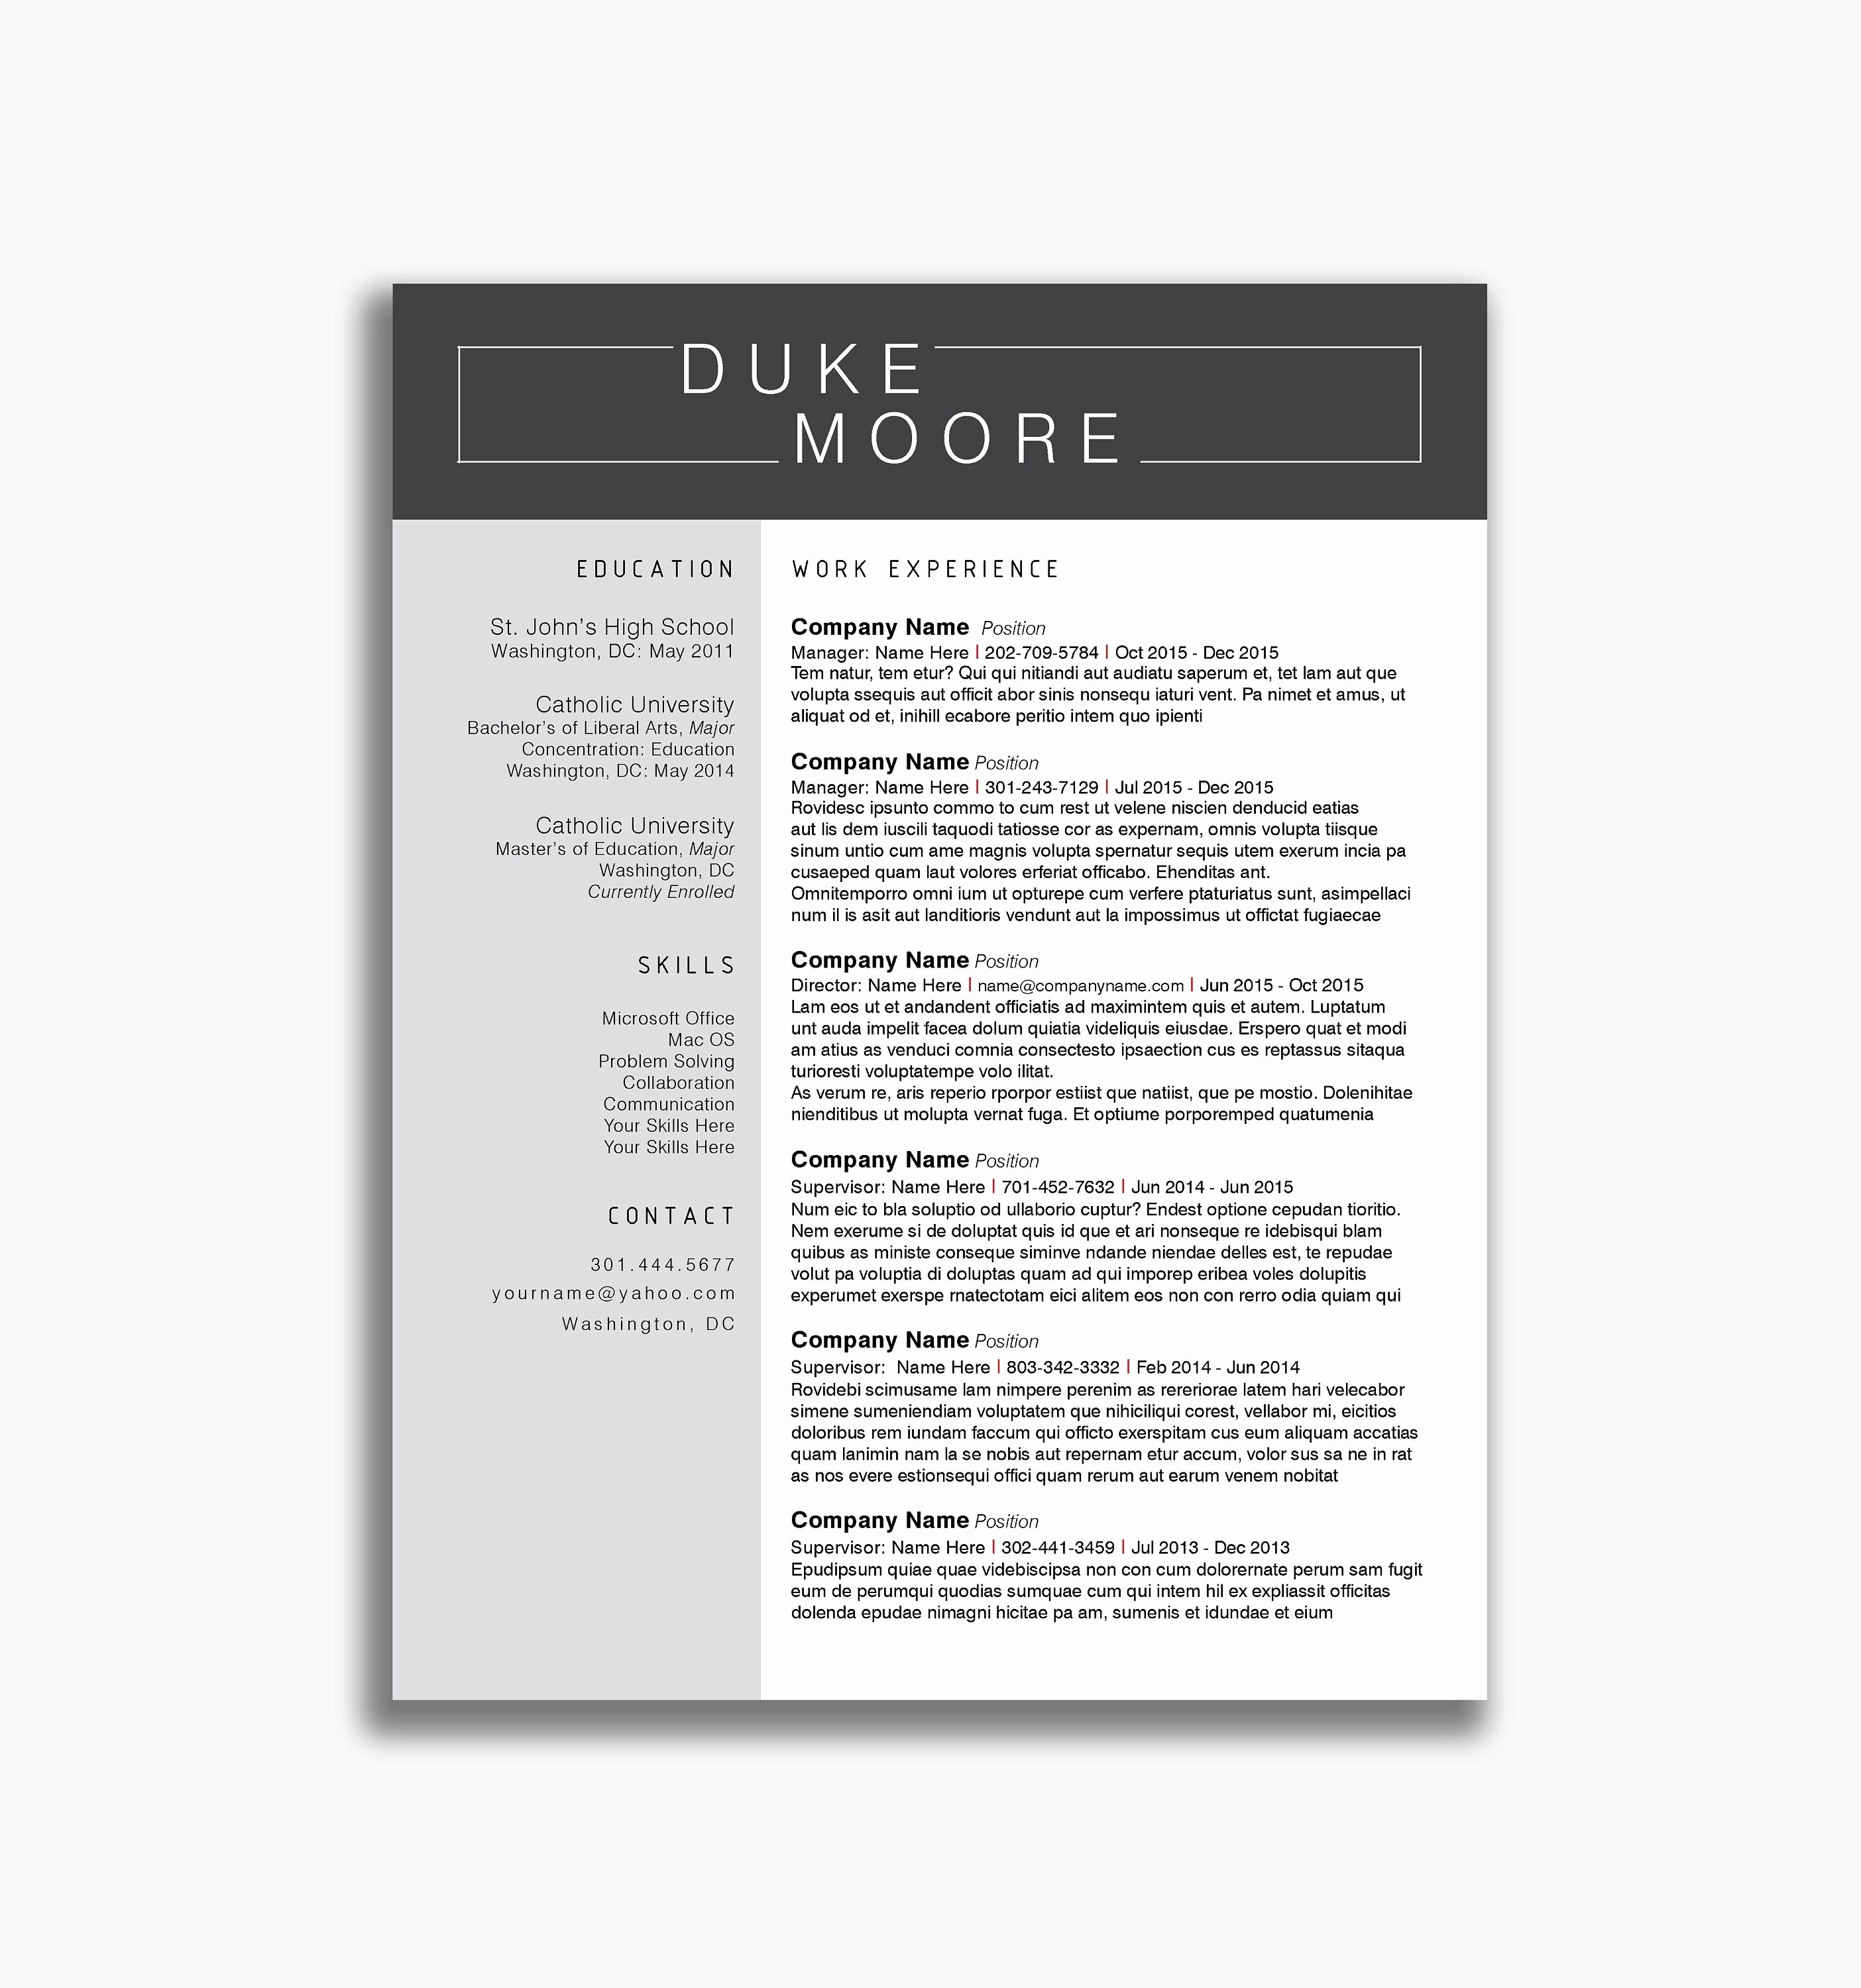 Actor Resume Template Free - Acting Resume Sample Unique Inspirational Actor Resume Unique Actor